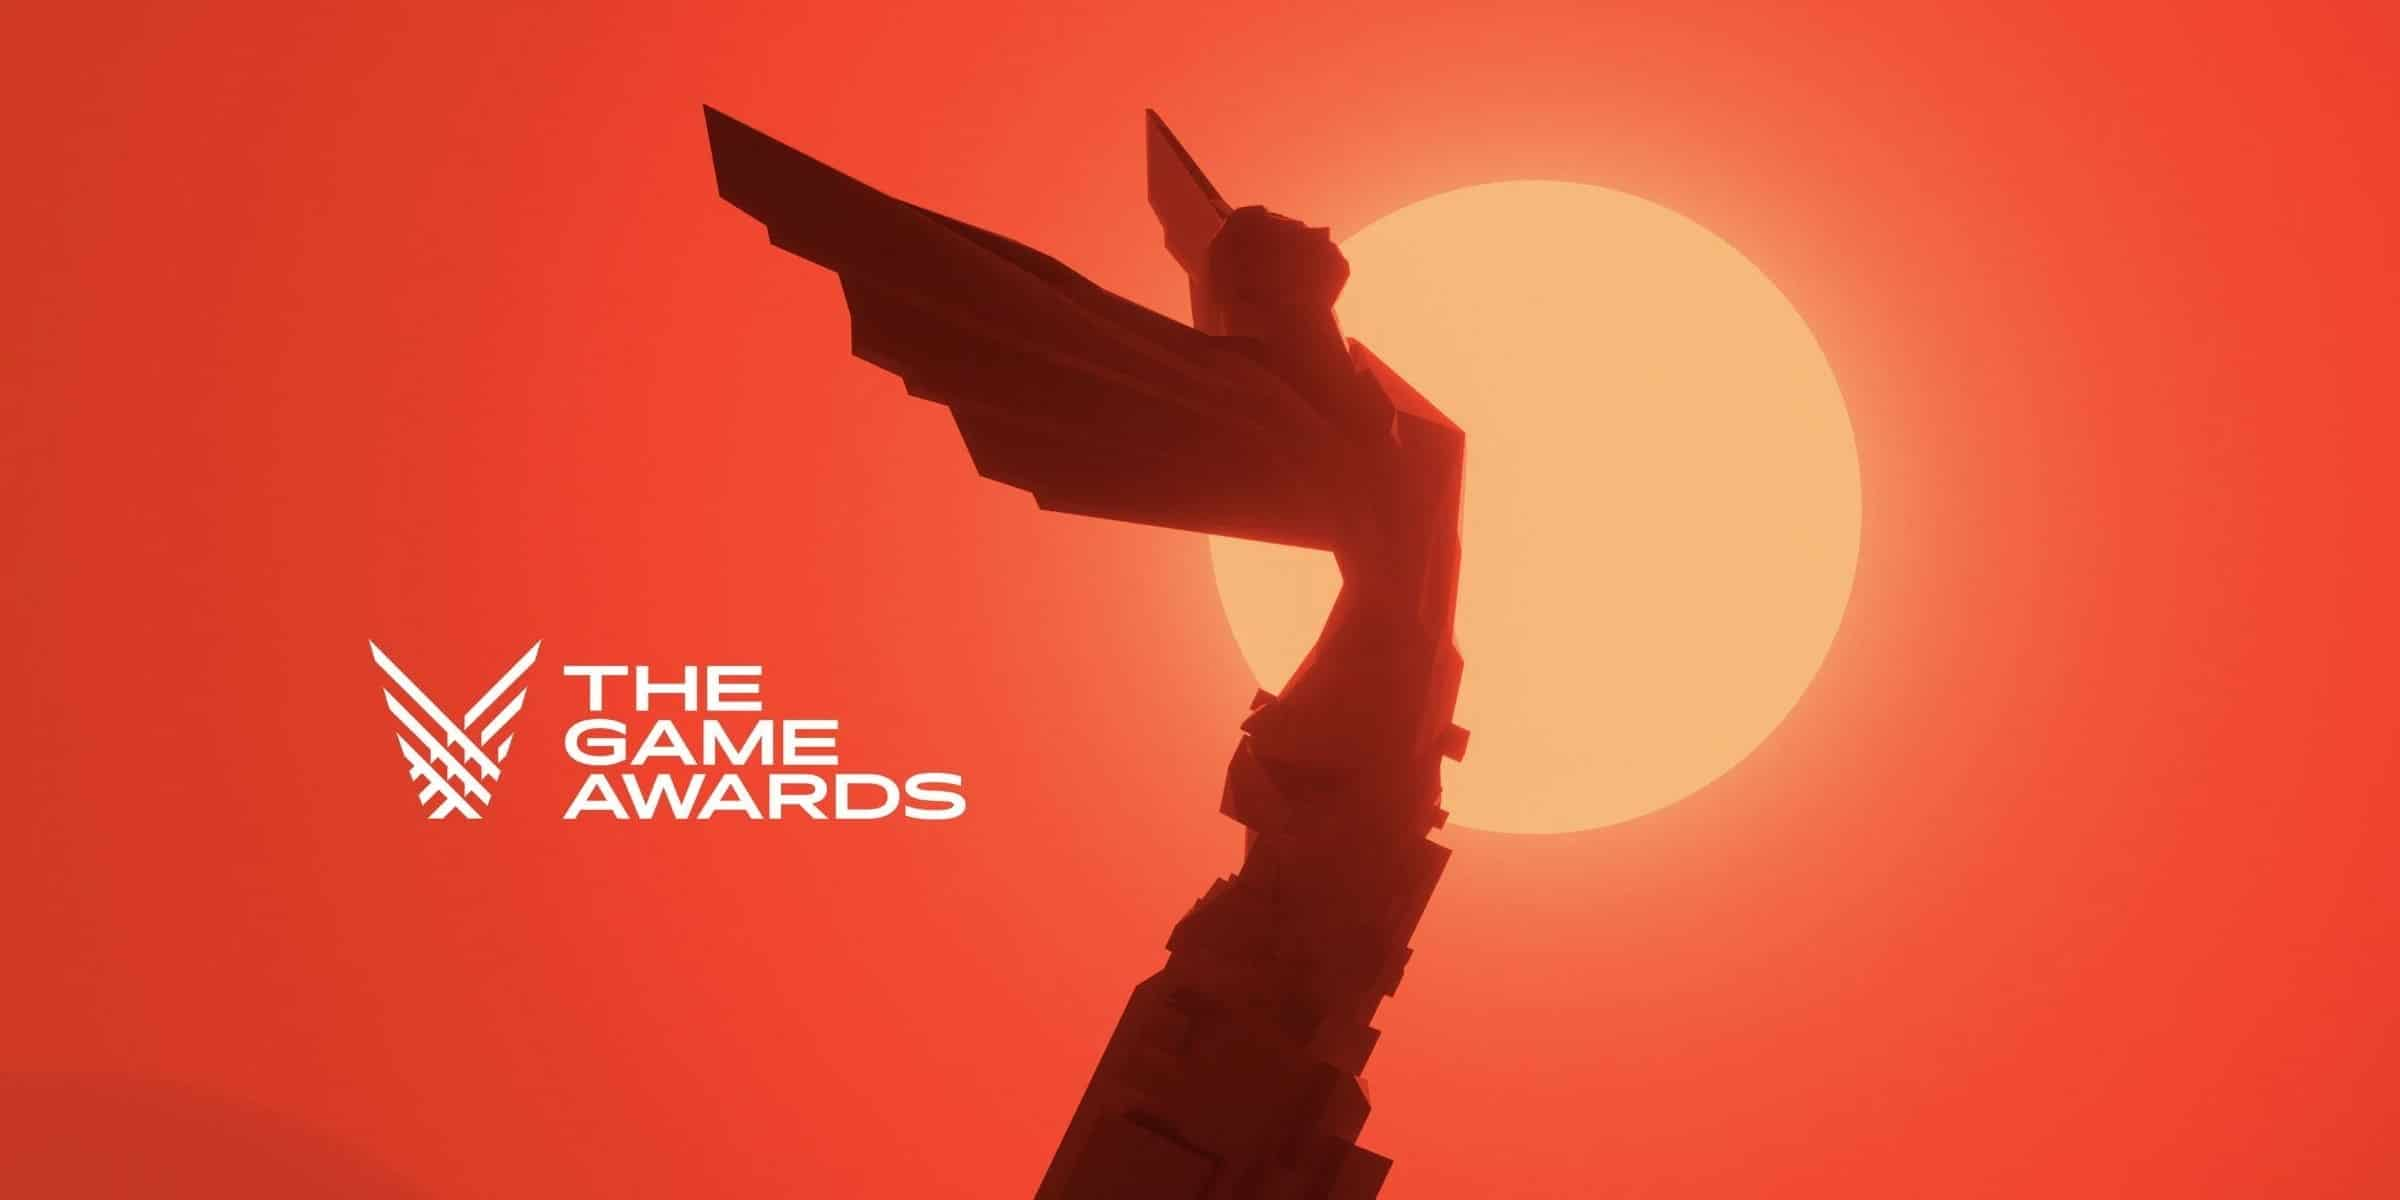 The Game Awards 2020 Recap: Winners, Announcements, and Special Guests!